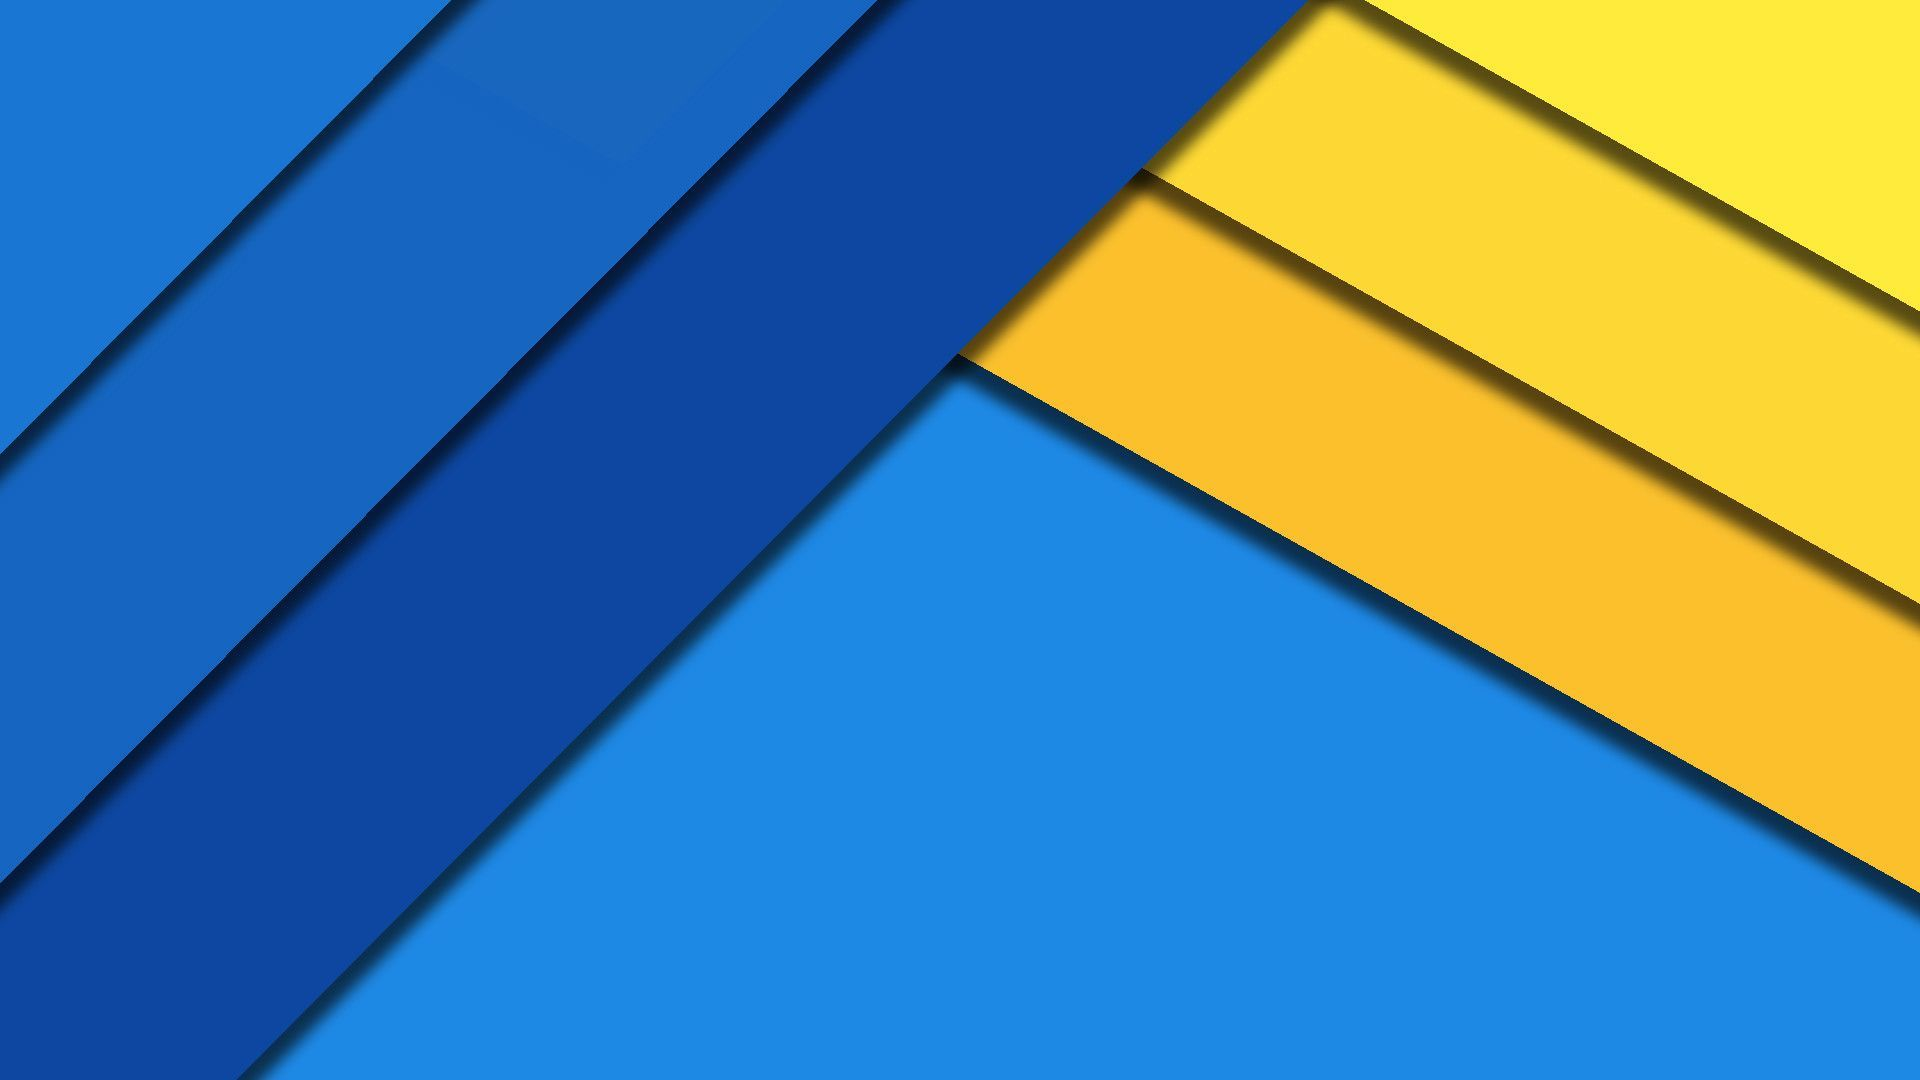 Blue Yellow Wallpapers Top Free Blue Yellow Backgrounds Wallpaperaccess